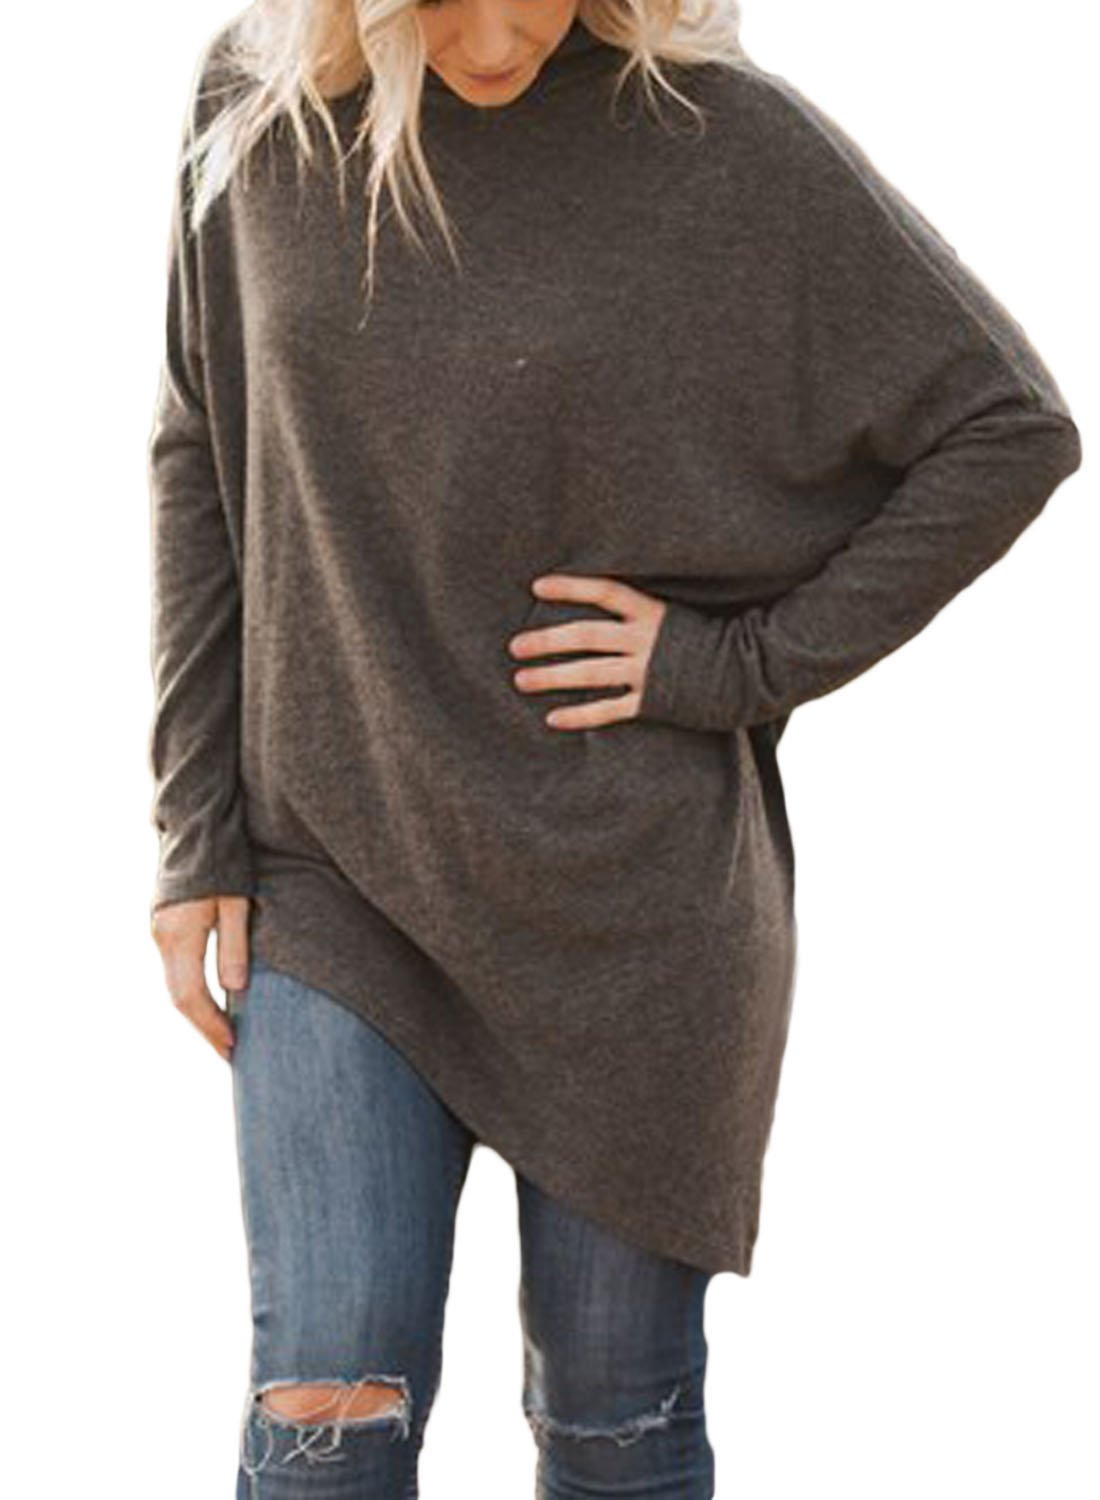 FARYSAYS Women's Casual Long Sleeve Turtleneck Loose Fit Handkerchief Hem Tunic Tops Brown Medium